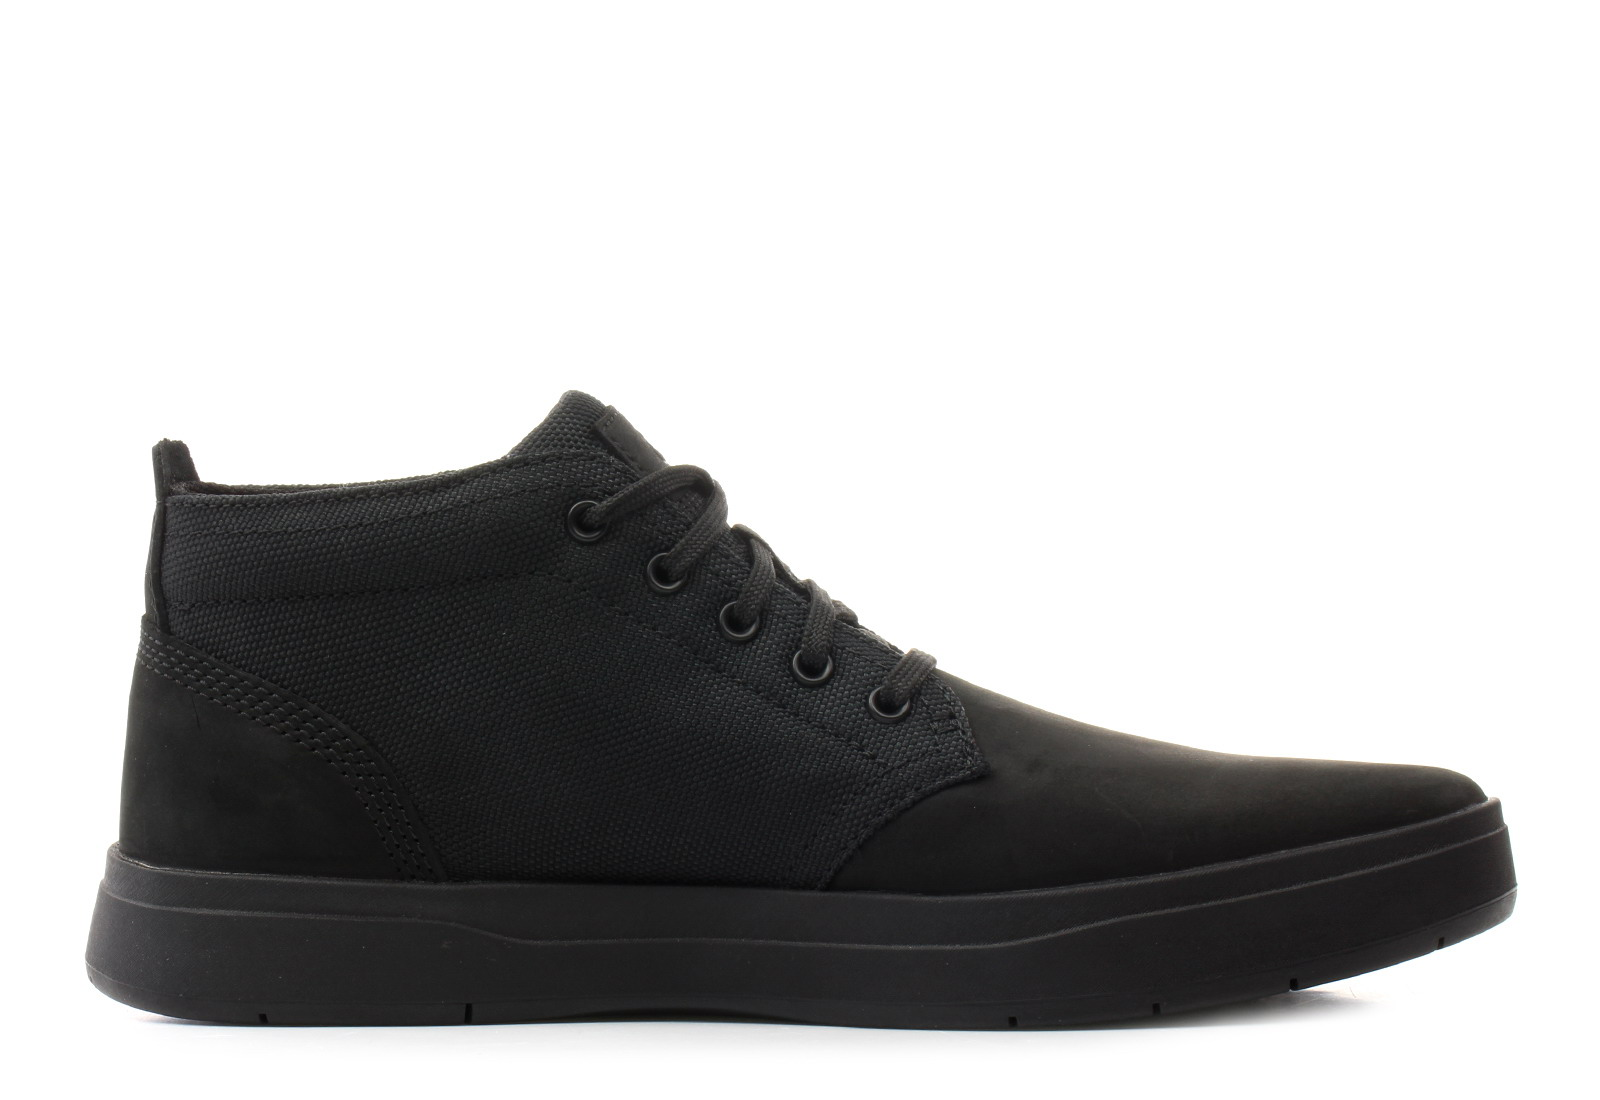 Timberland Shoes Davis Square Chukka A1t16 Blk